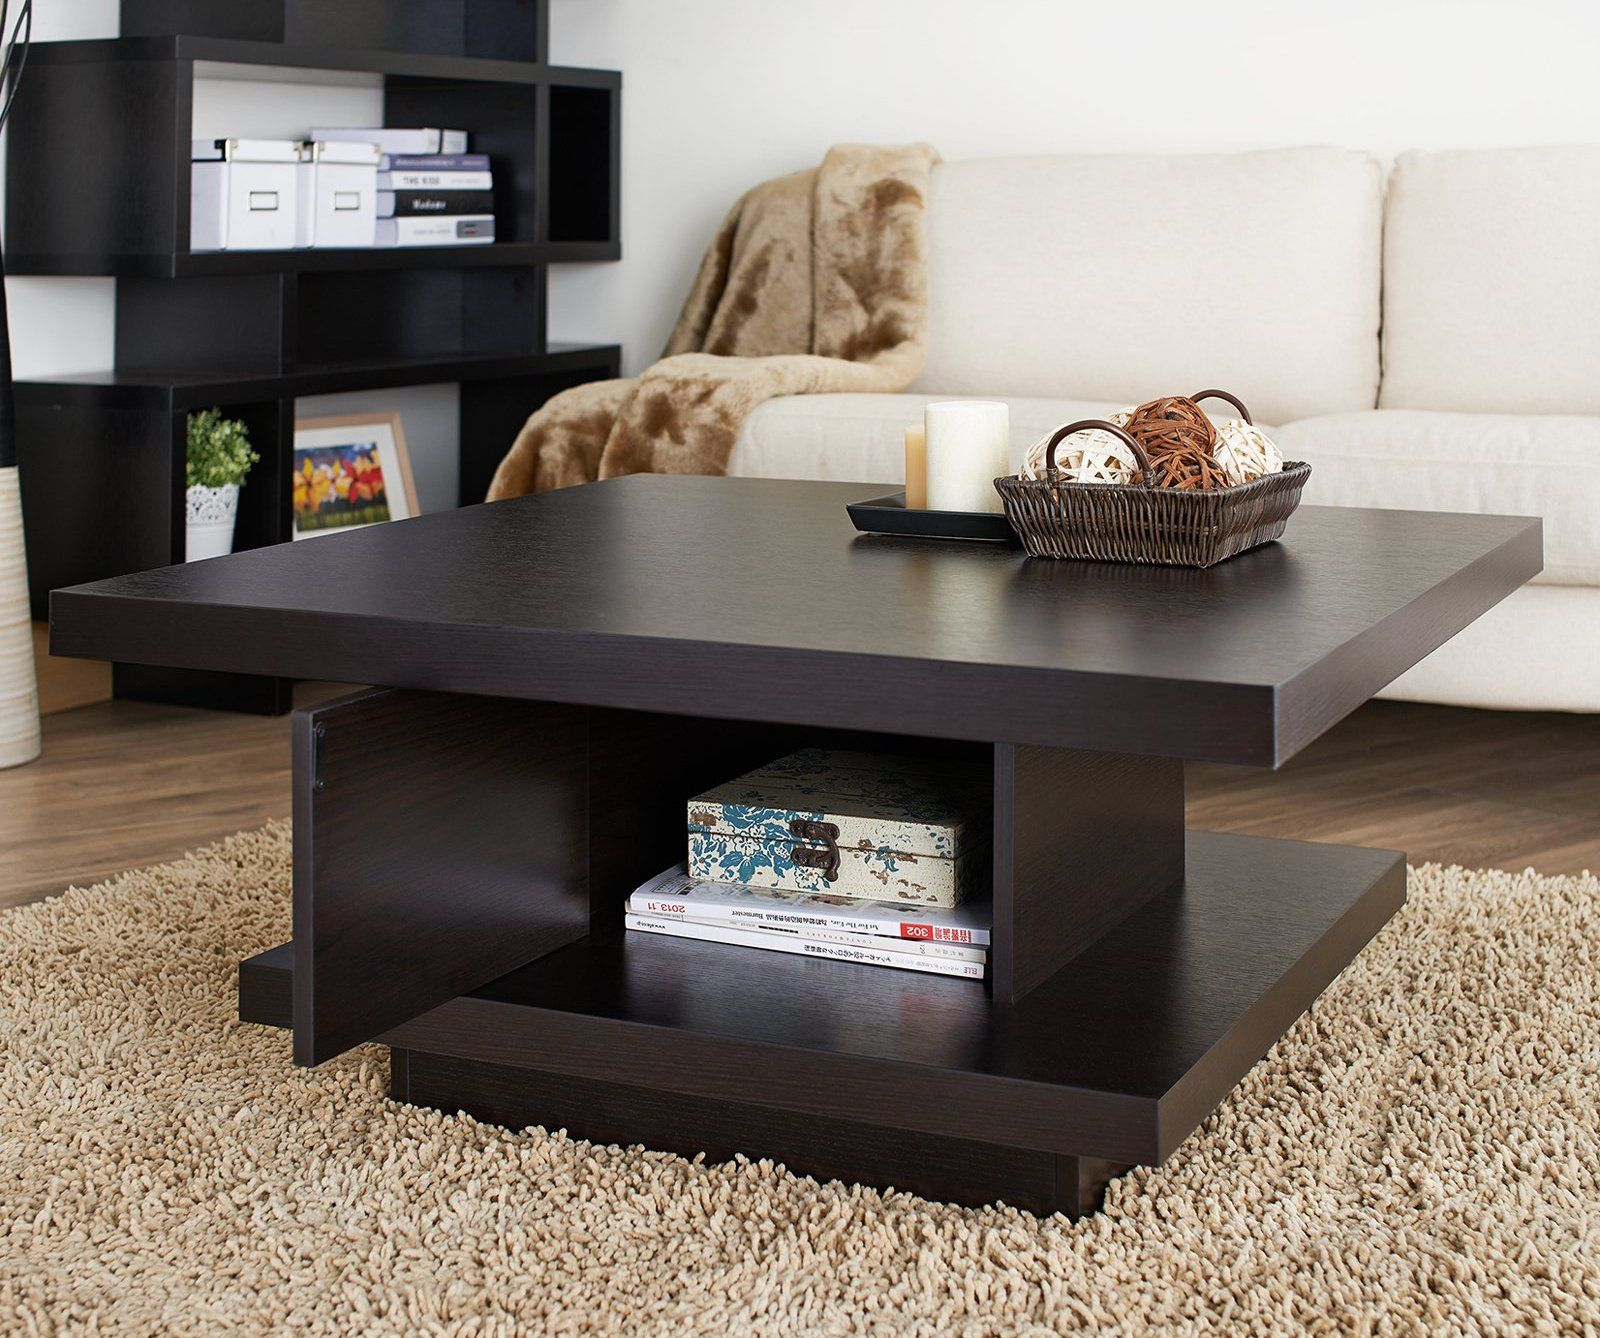 20 Large Coffee Table Books Home Office Furniture Desk Check More At Http